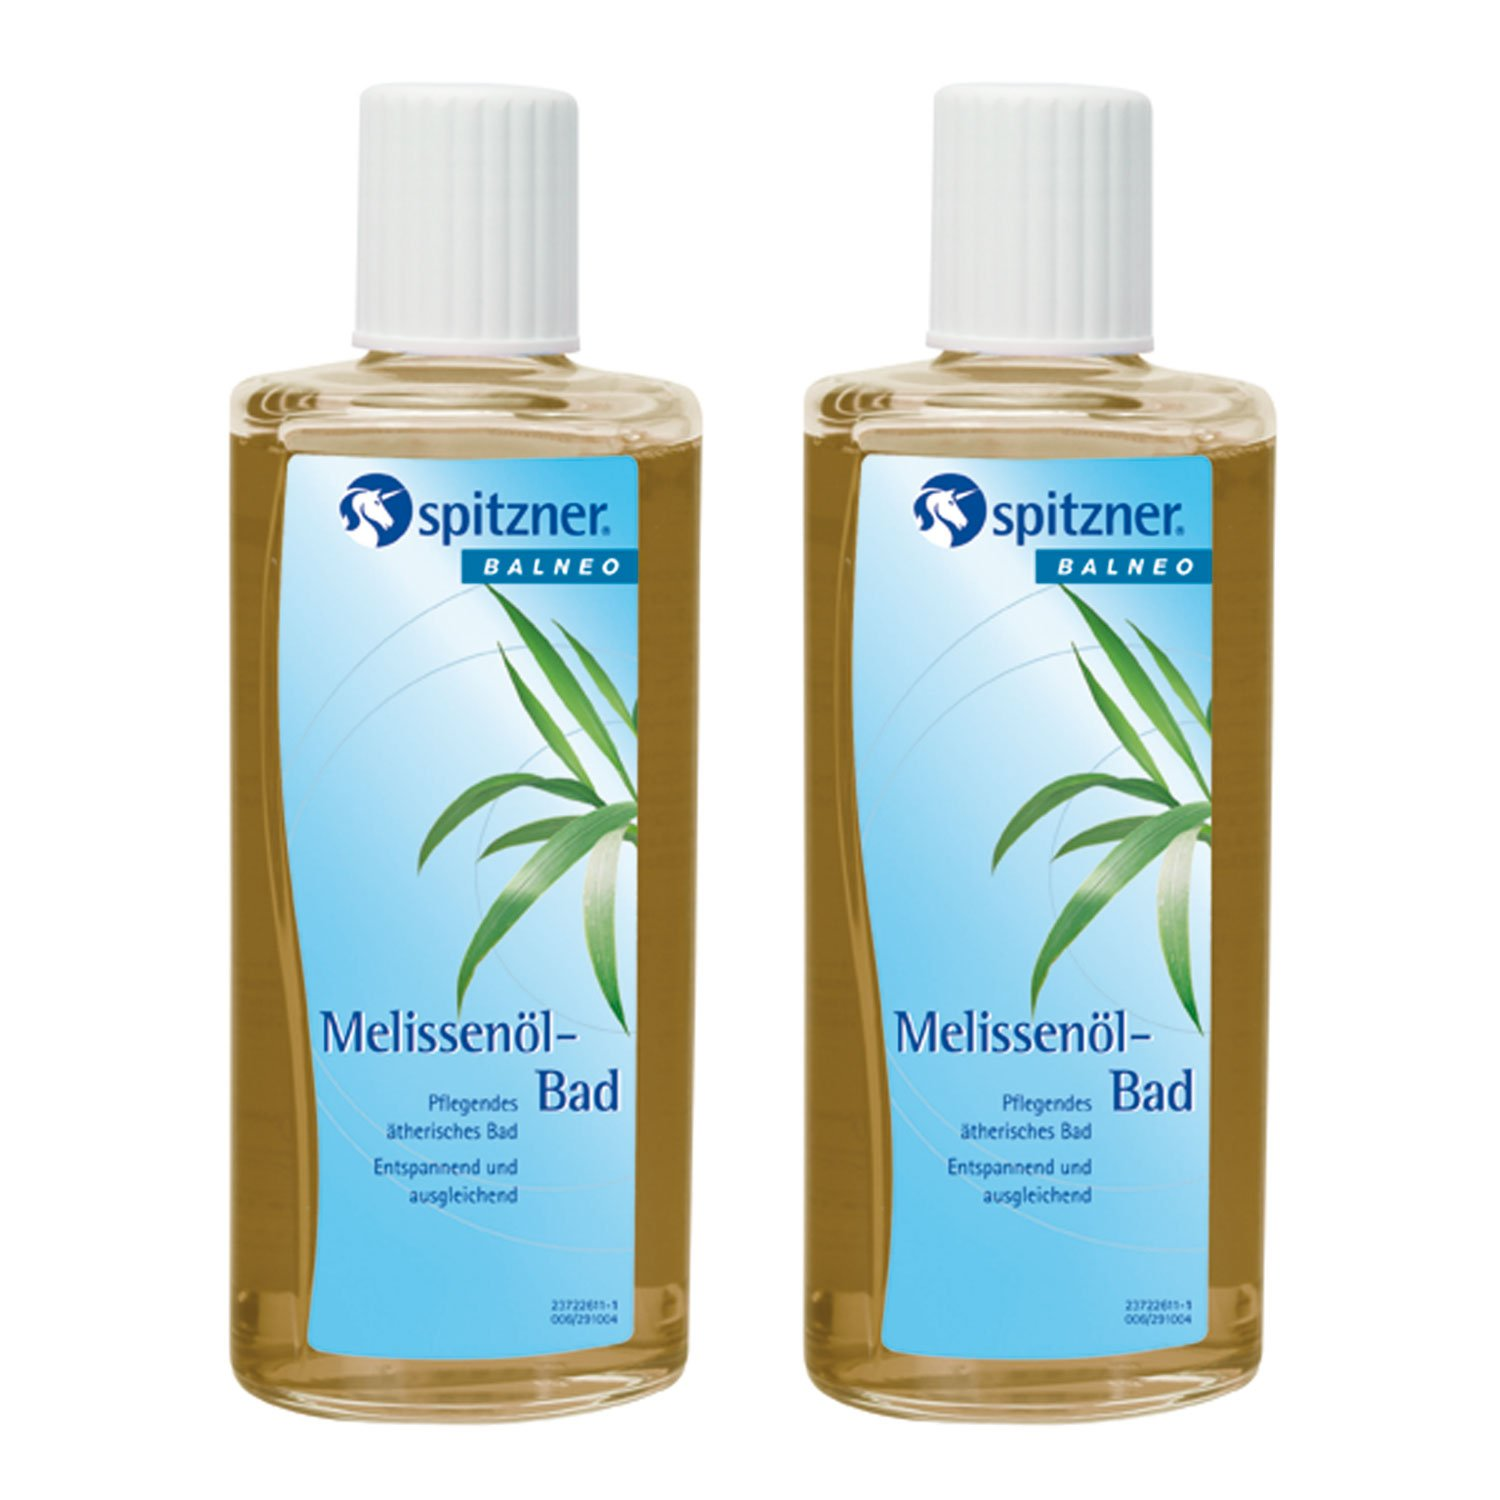 Melissa Oil Bath Soak (2 x 190 ml) from Spitzner